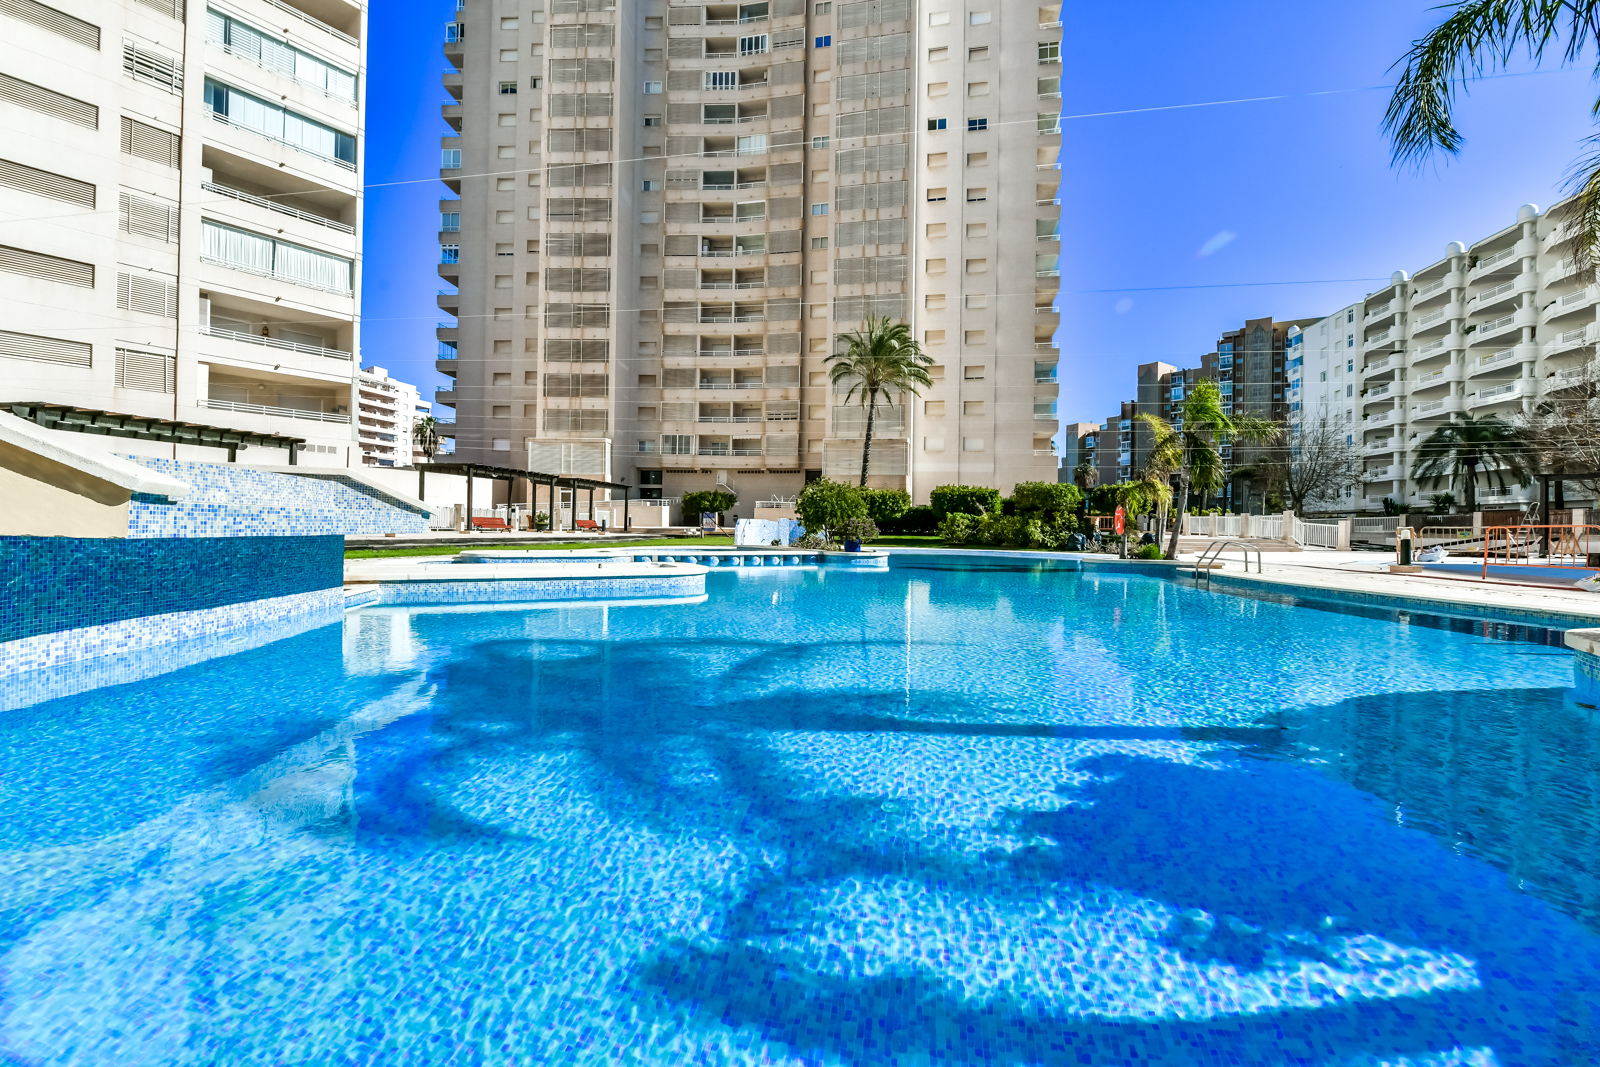 Apartamento Apolo XVII 19 57, Apartment  with communal pool in Calpe, on the Costa Blanca, Spain for 4 persons.....